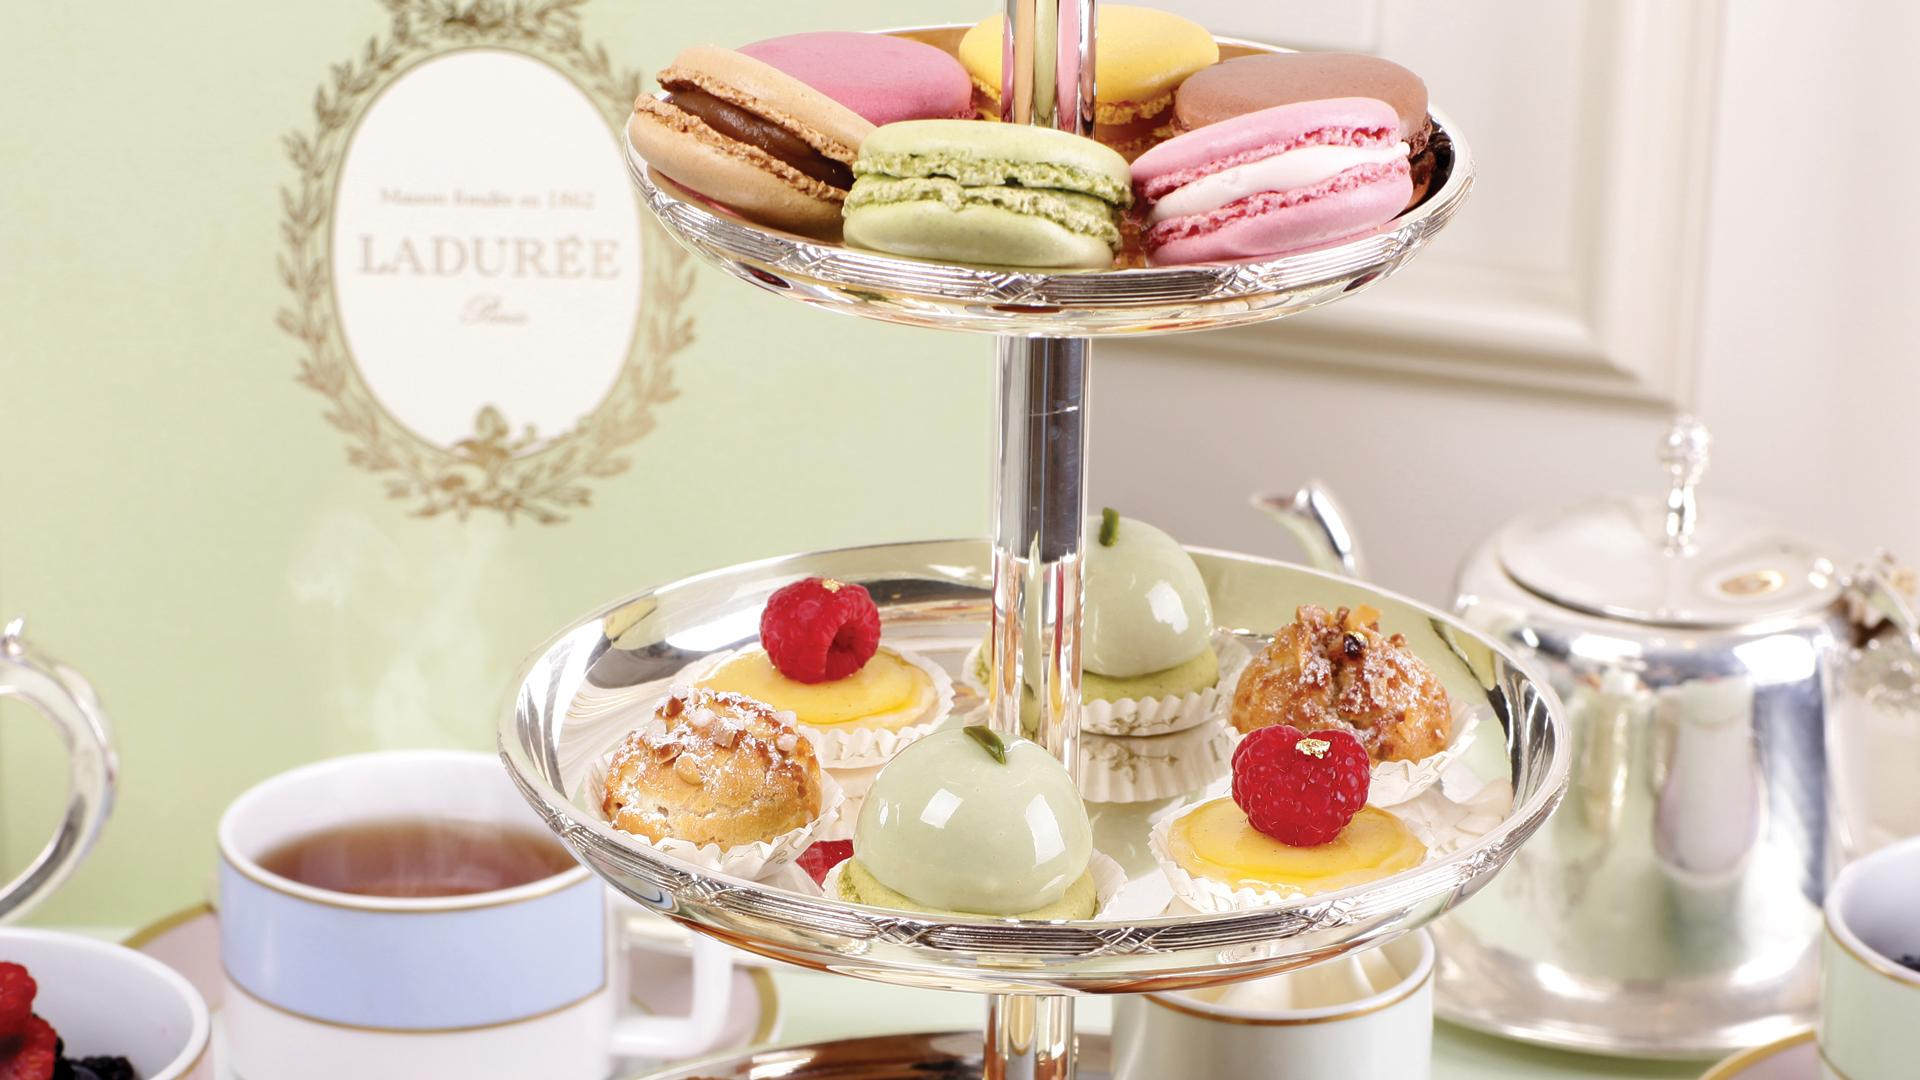 Ladurée afternoon tea service